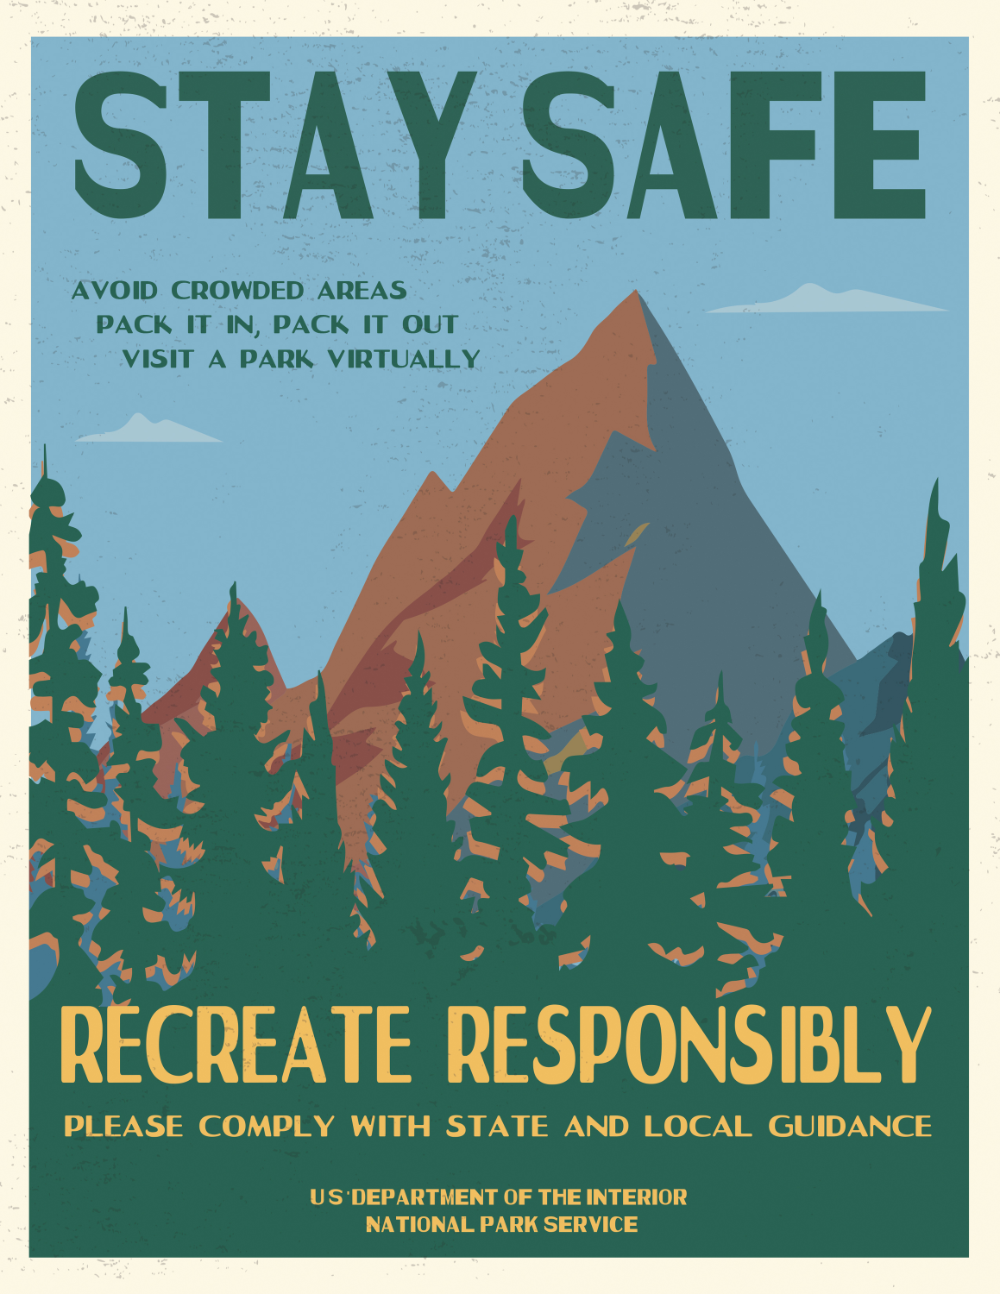 These Awesome And Hilarious Posters Teach Us How To Social Distance Inside National Parks Open To The Public National Park Service National Parks Park Service